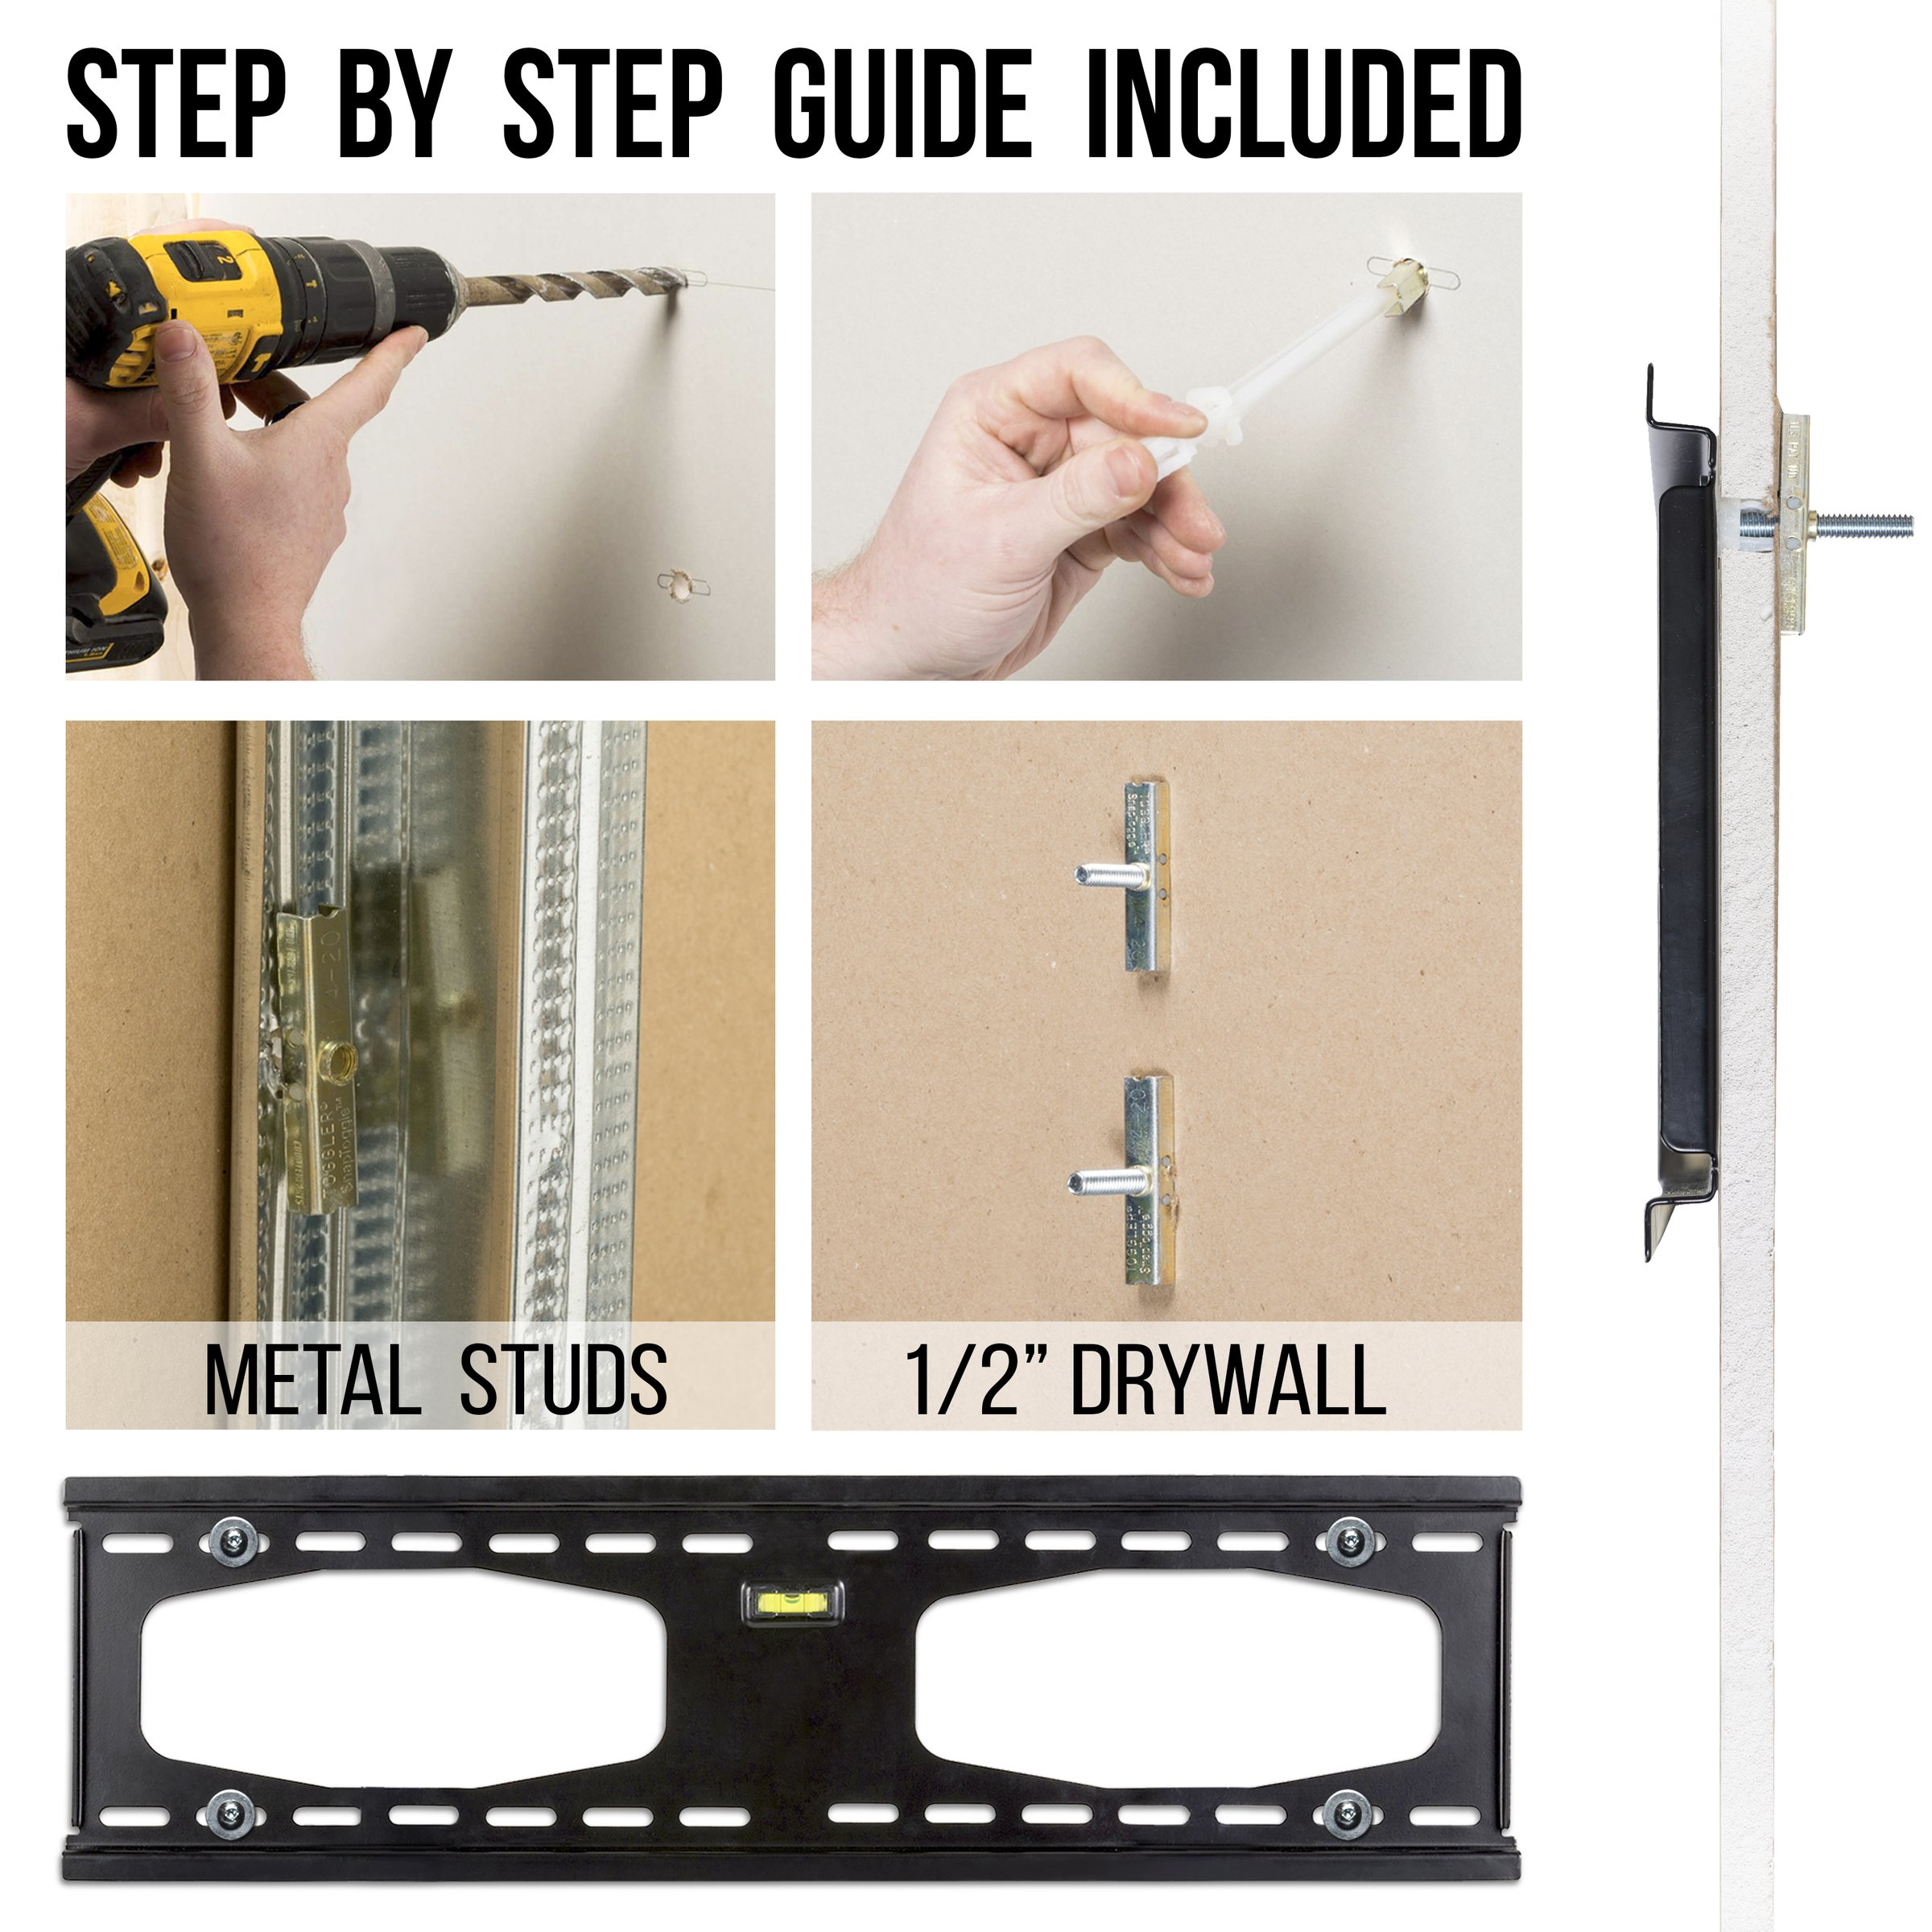 Condo Wall Studs types – Can I hang a tv on my razor this